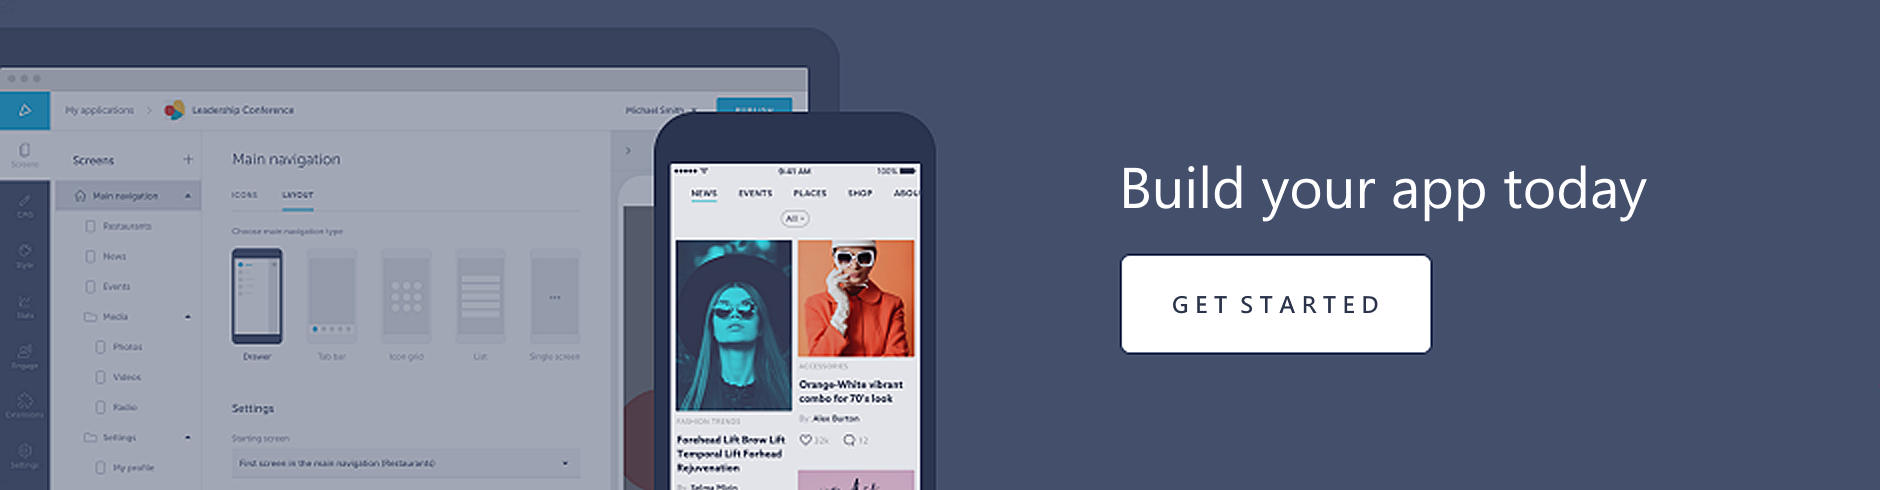 build your app today